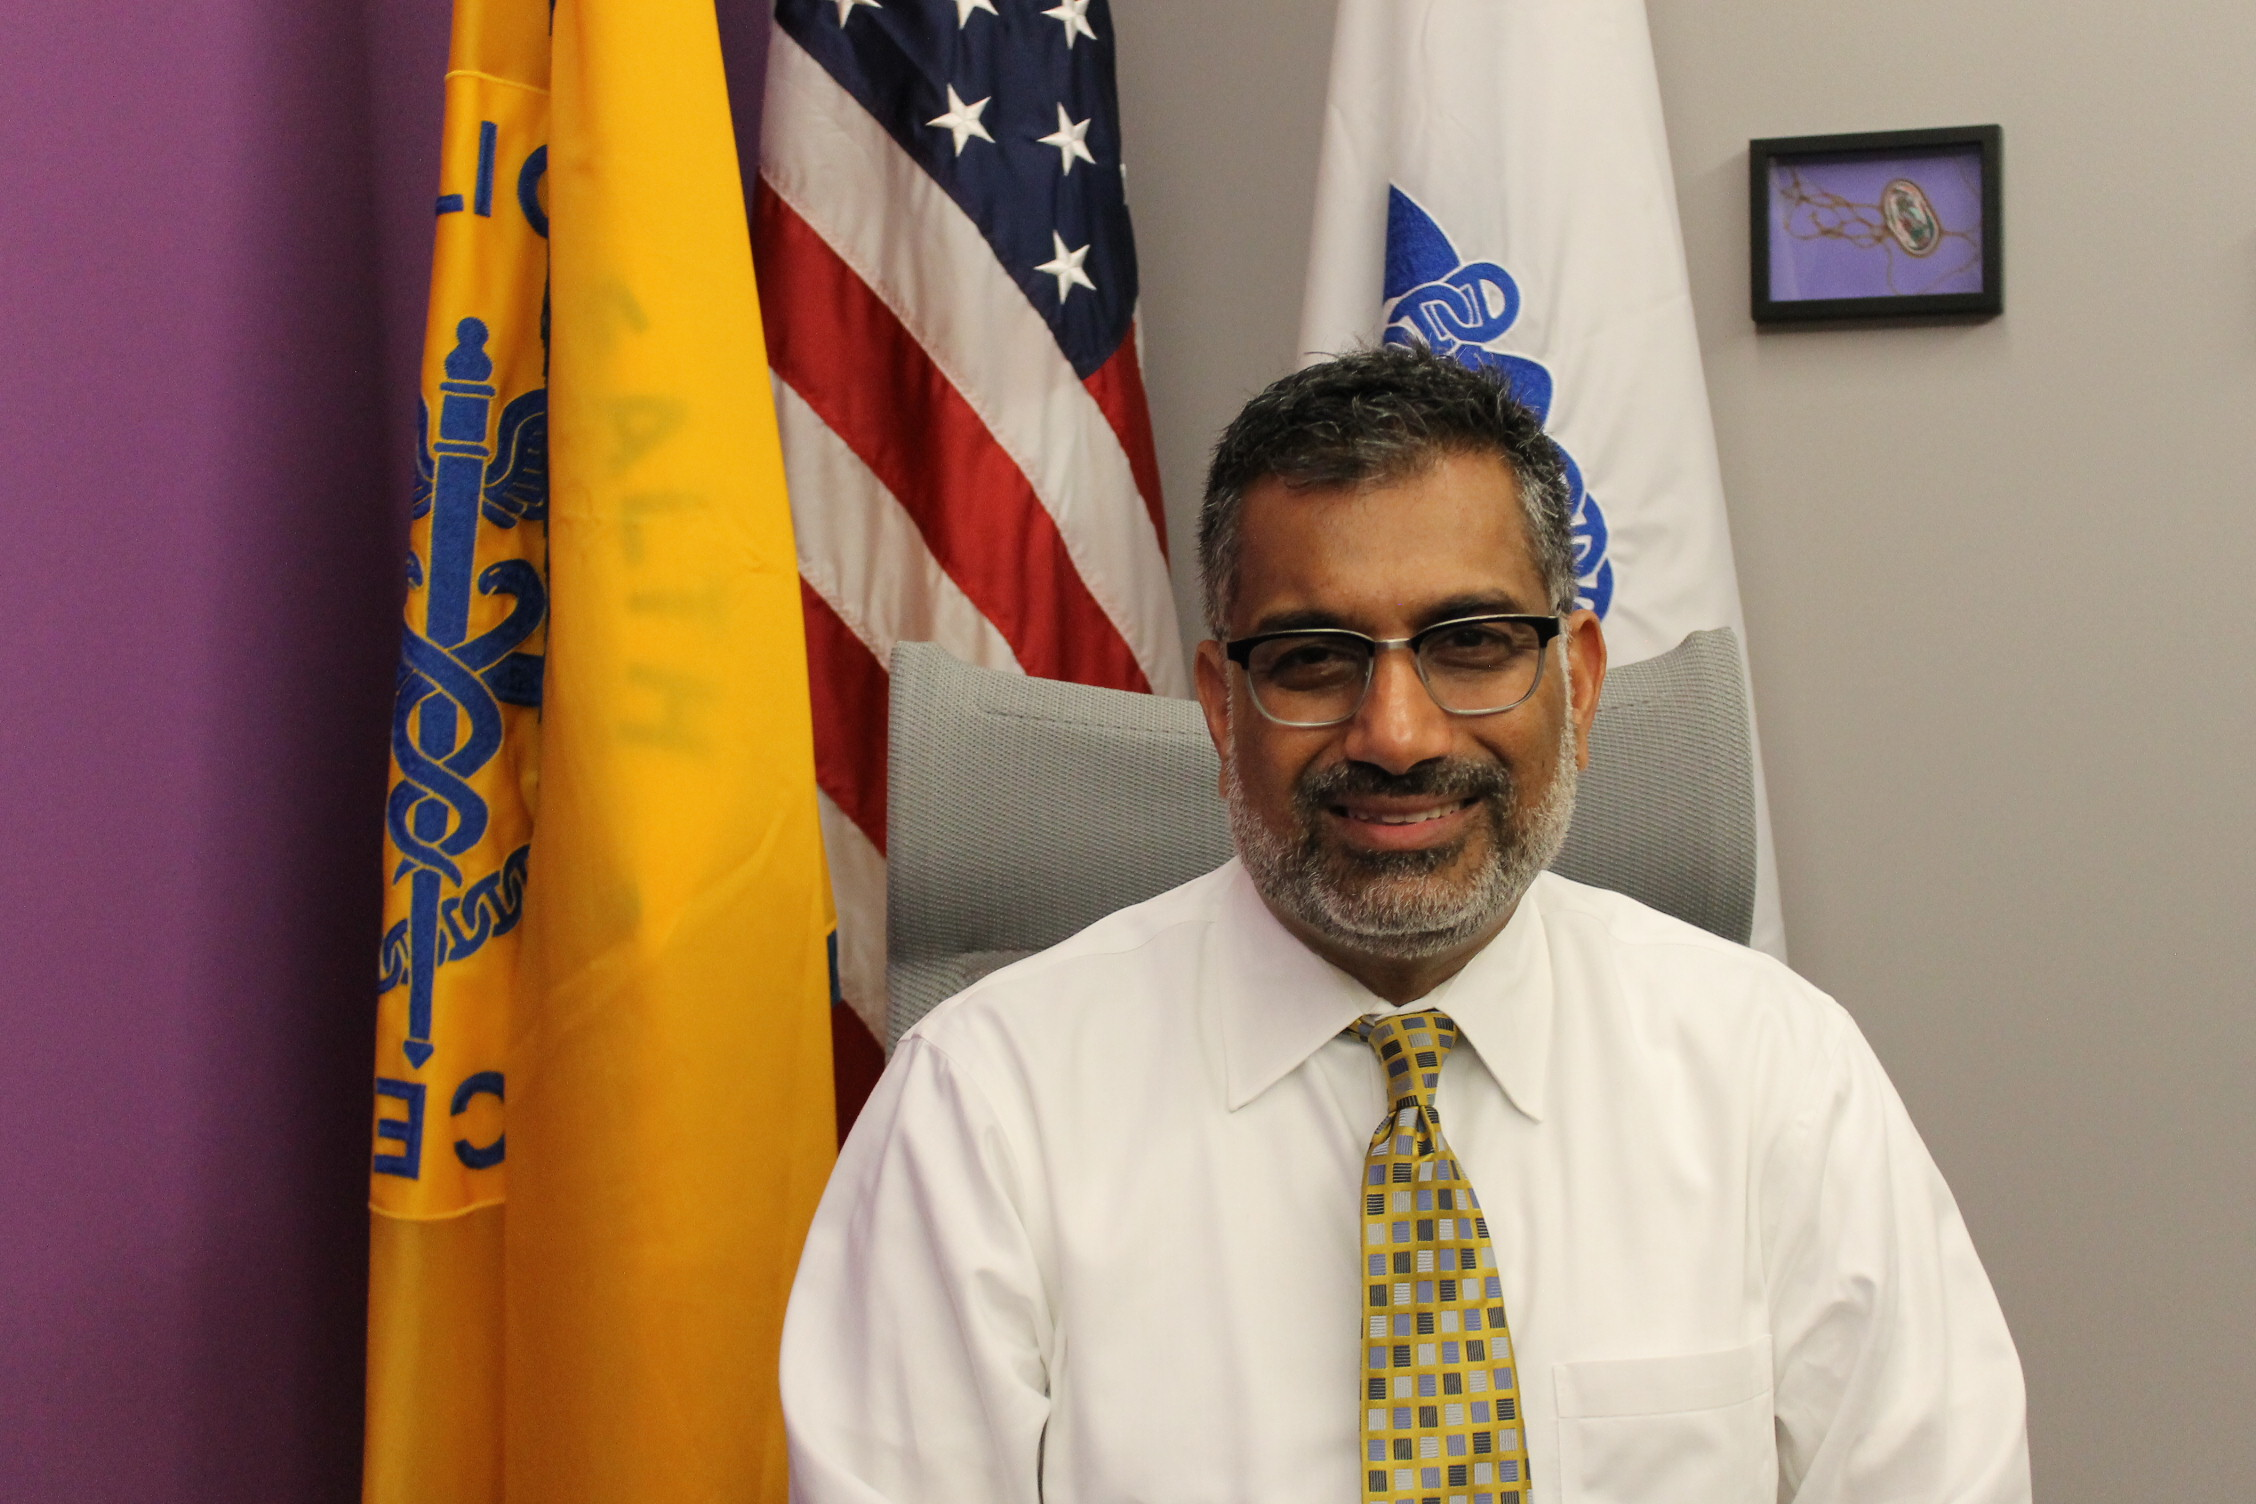 Dr. Ali Khan has worked all around the world fighting infectious disease. (Photo by Brandon McDermott)